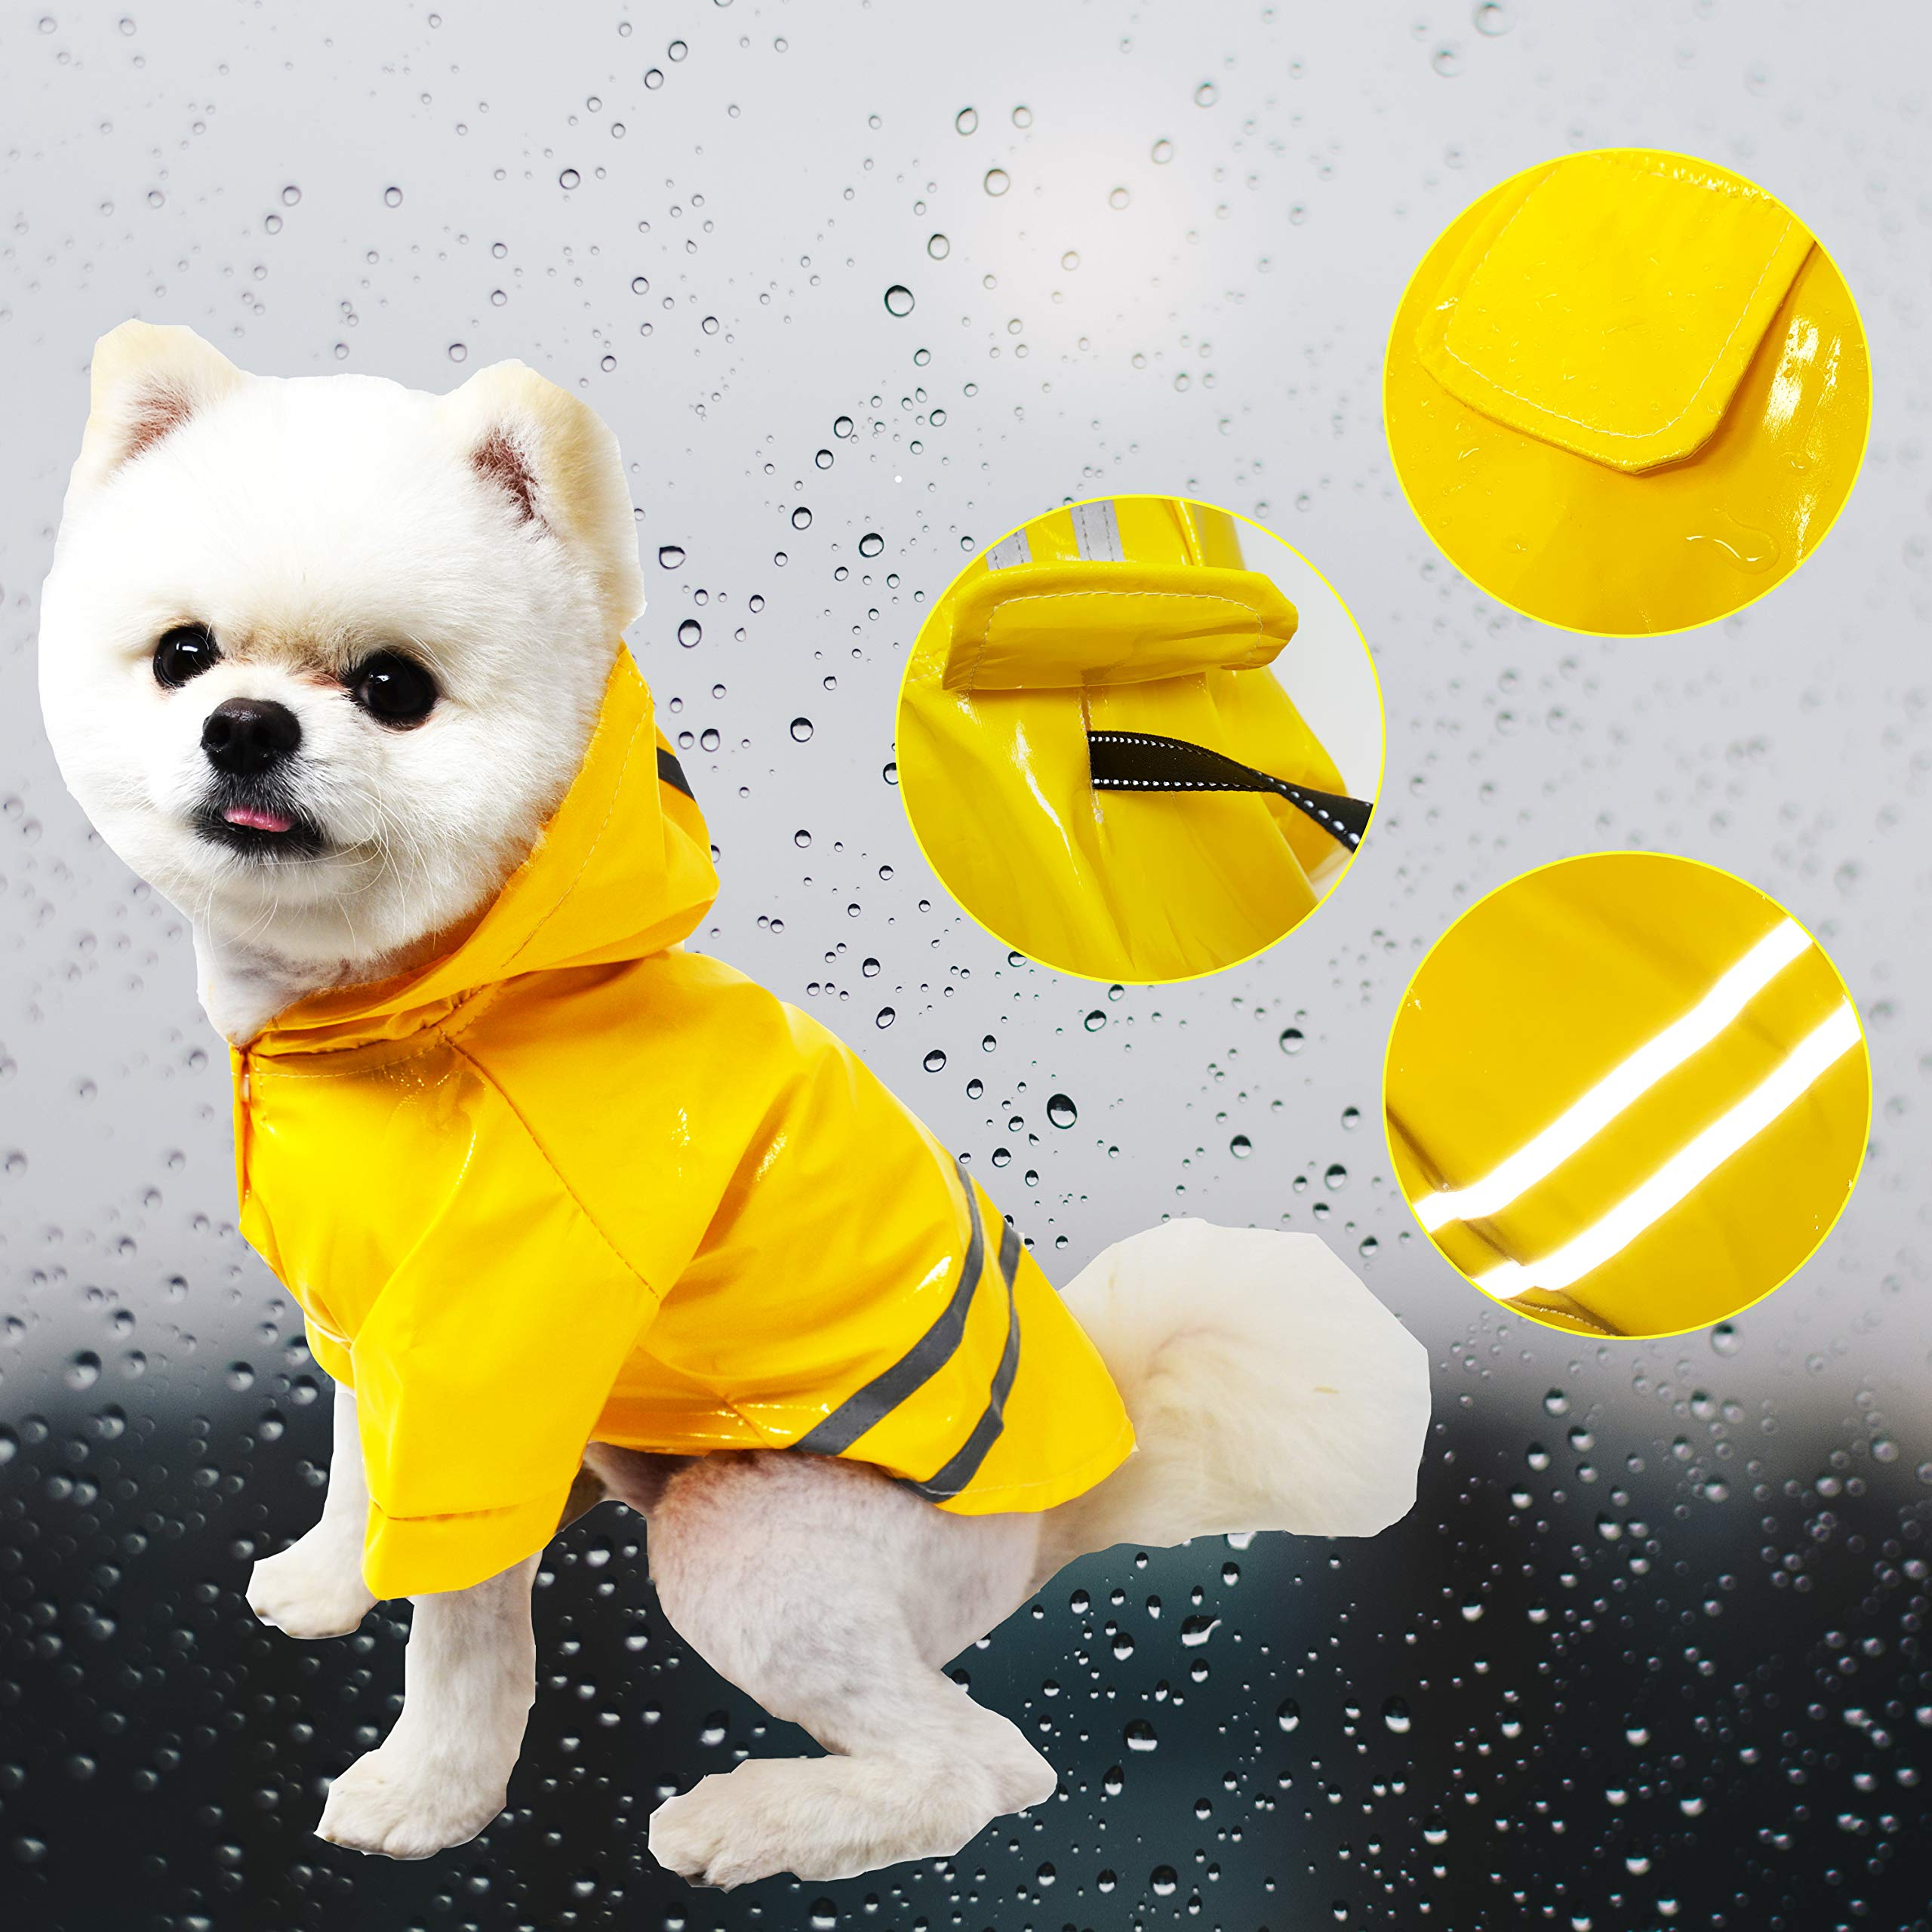 Cutie Pet Dog Raincoat Waterproof Coats for Dogs Lightweight Rain Jacket Breathable Rain Poncho Hooded Rainwear with Safety Reflective Stripes (M, Yellow) by Cutie Pet